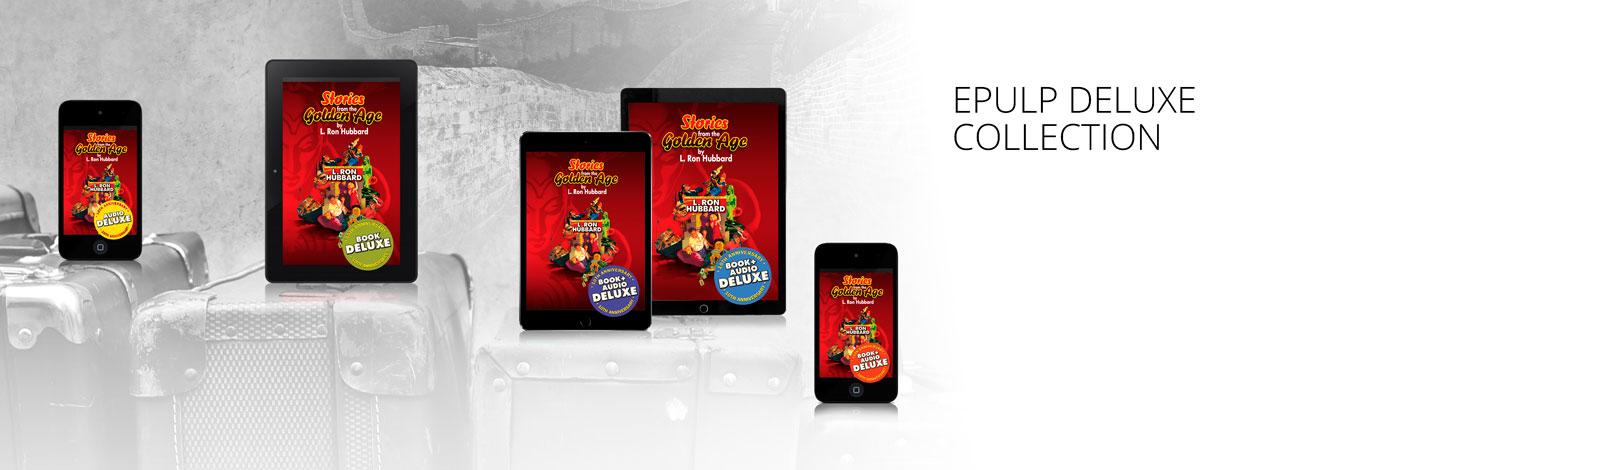 ePulp collection